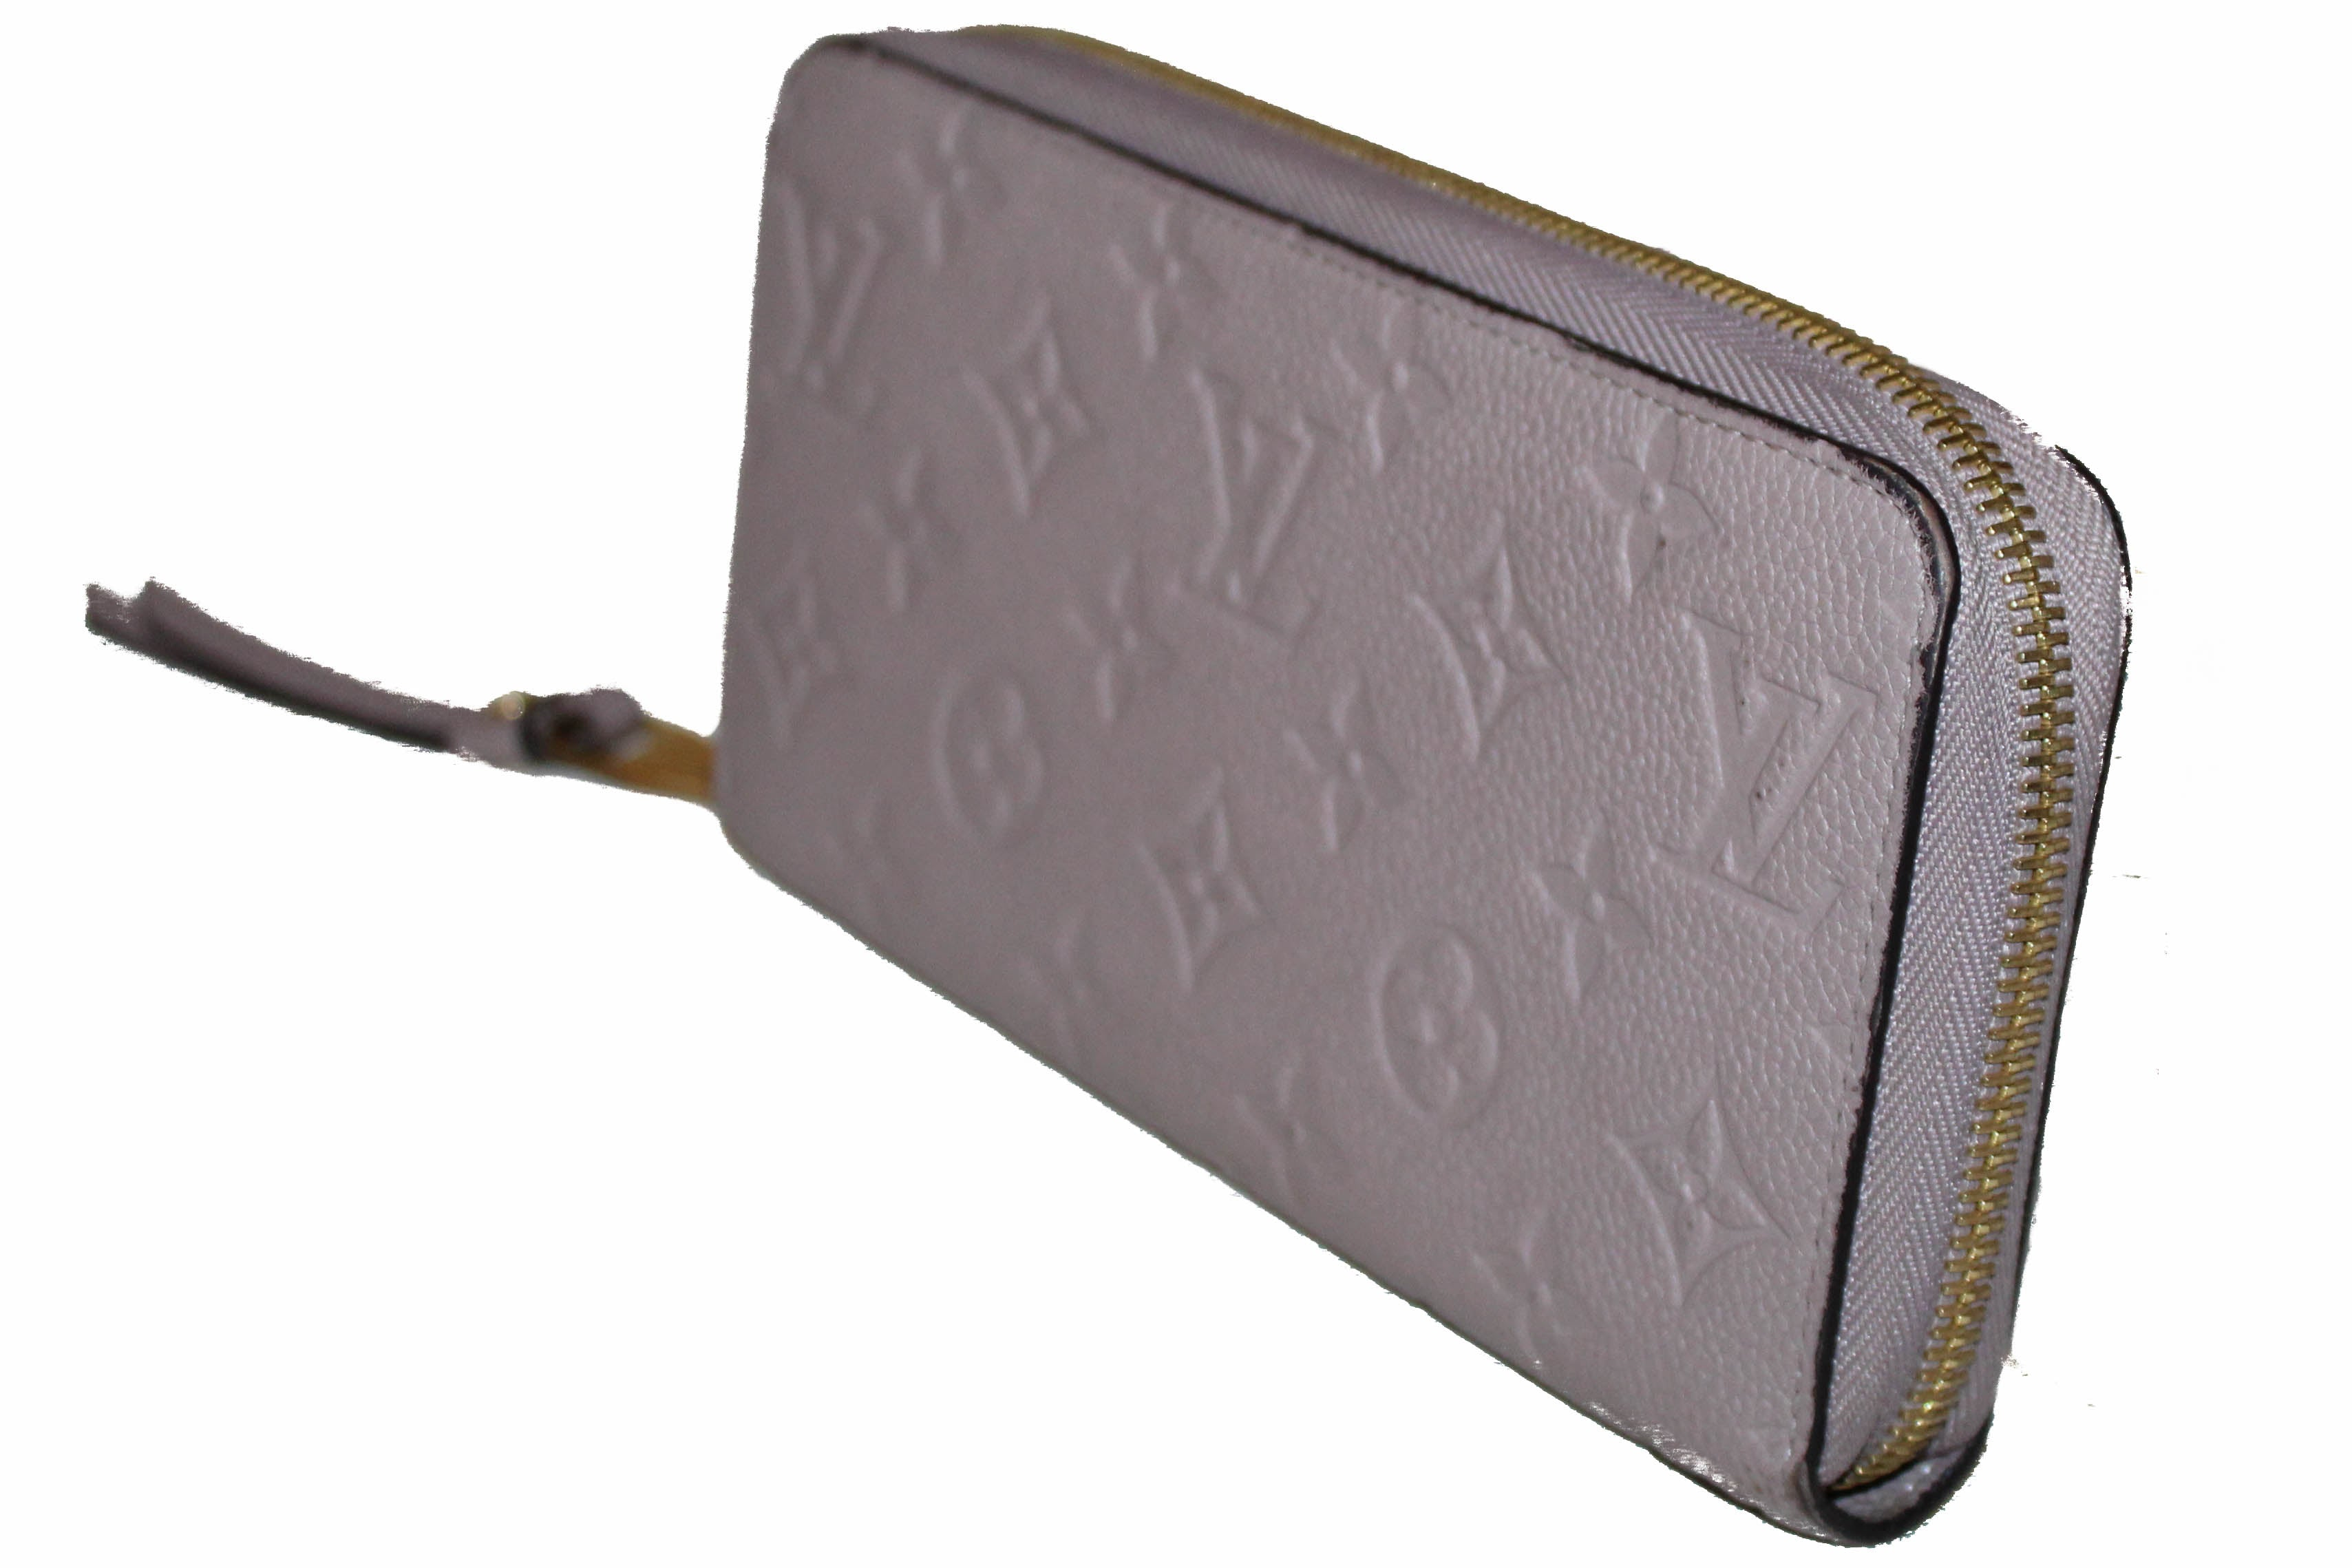 Authentic Louis Vuitton Mastic Monogram Empreinte Leather Zippy Wallet